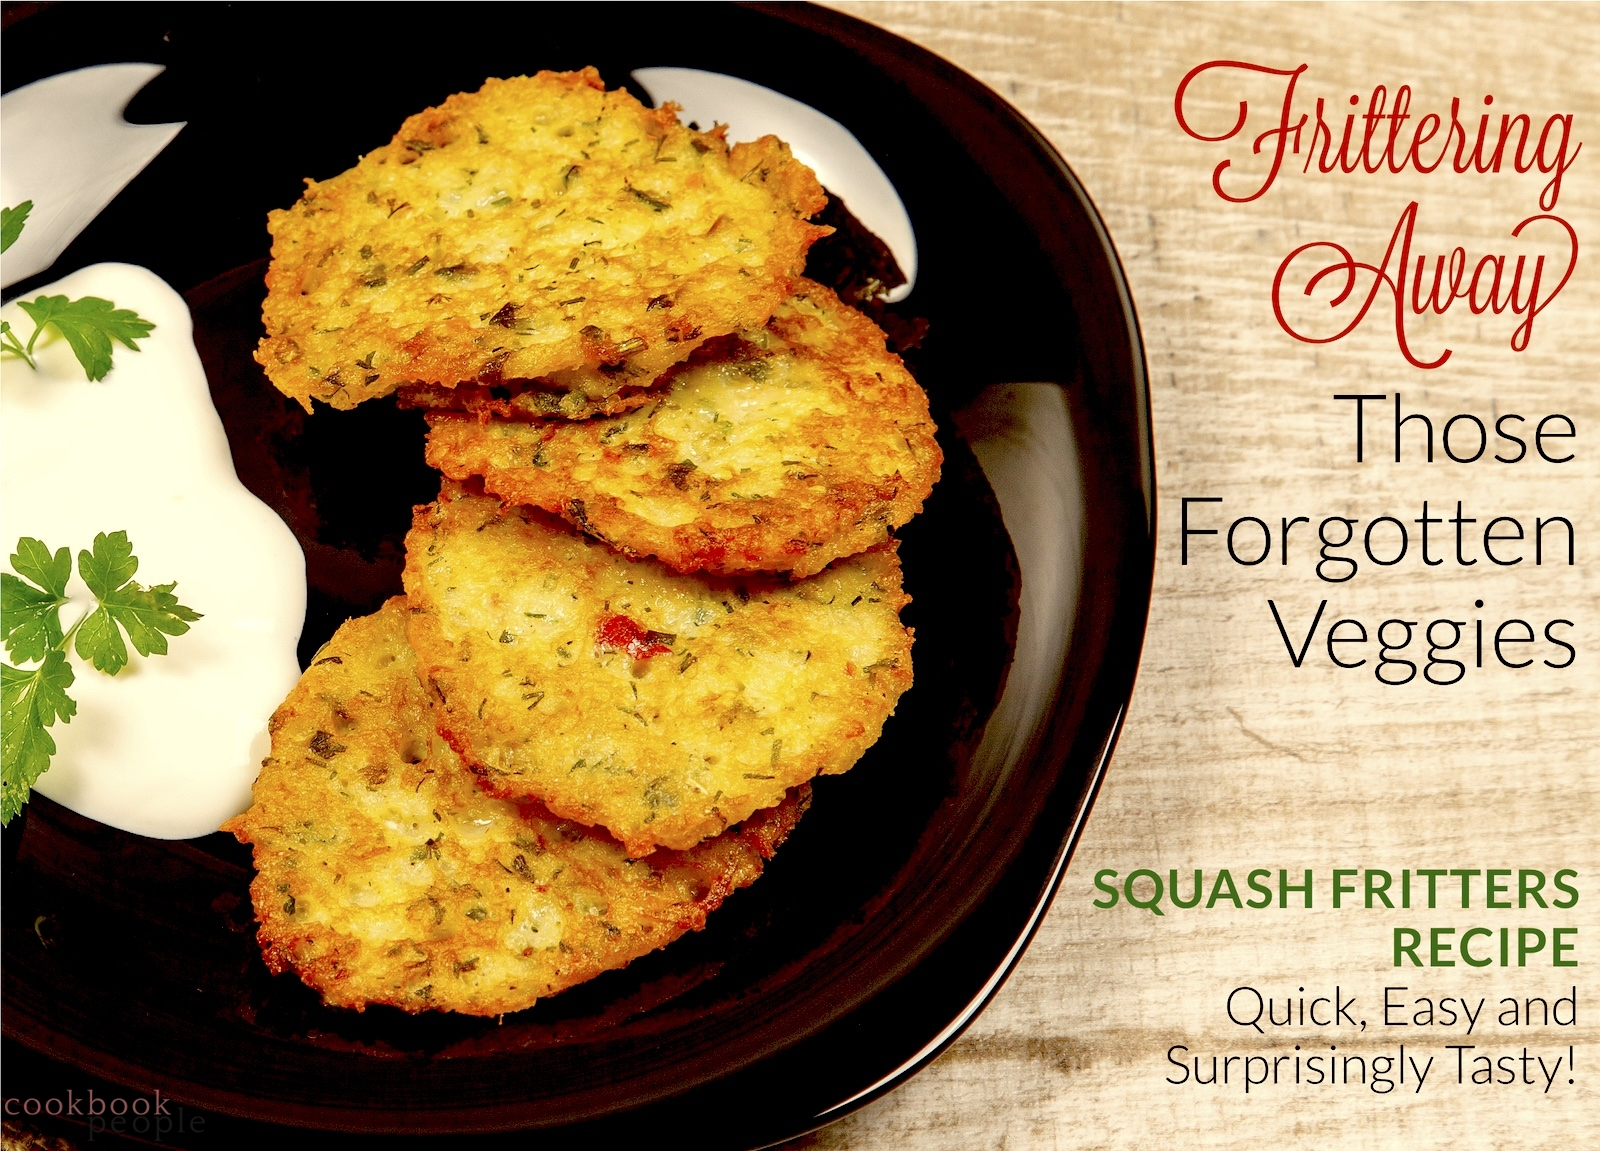 Black plate of fritters on wooden table with title: Frittering Away Those Forgotten Veggies - Squash Fritters Recipe: Quick, Easy and Surprisingly Tasty!